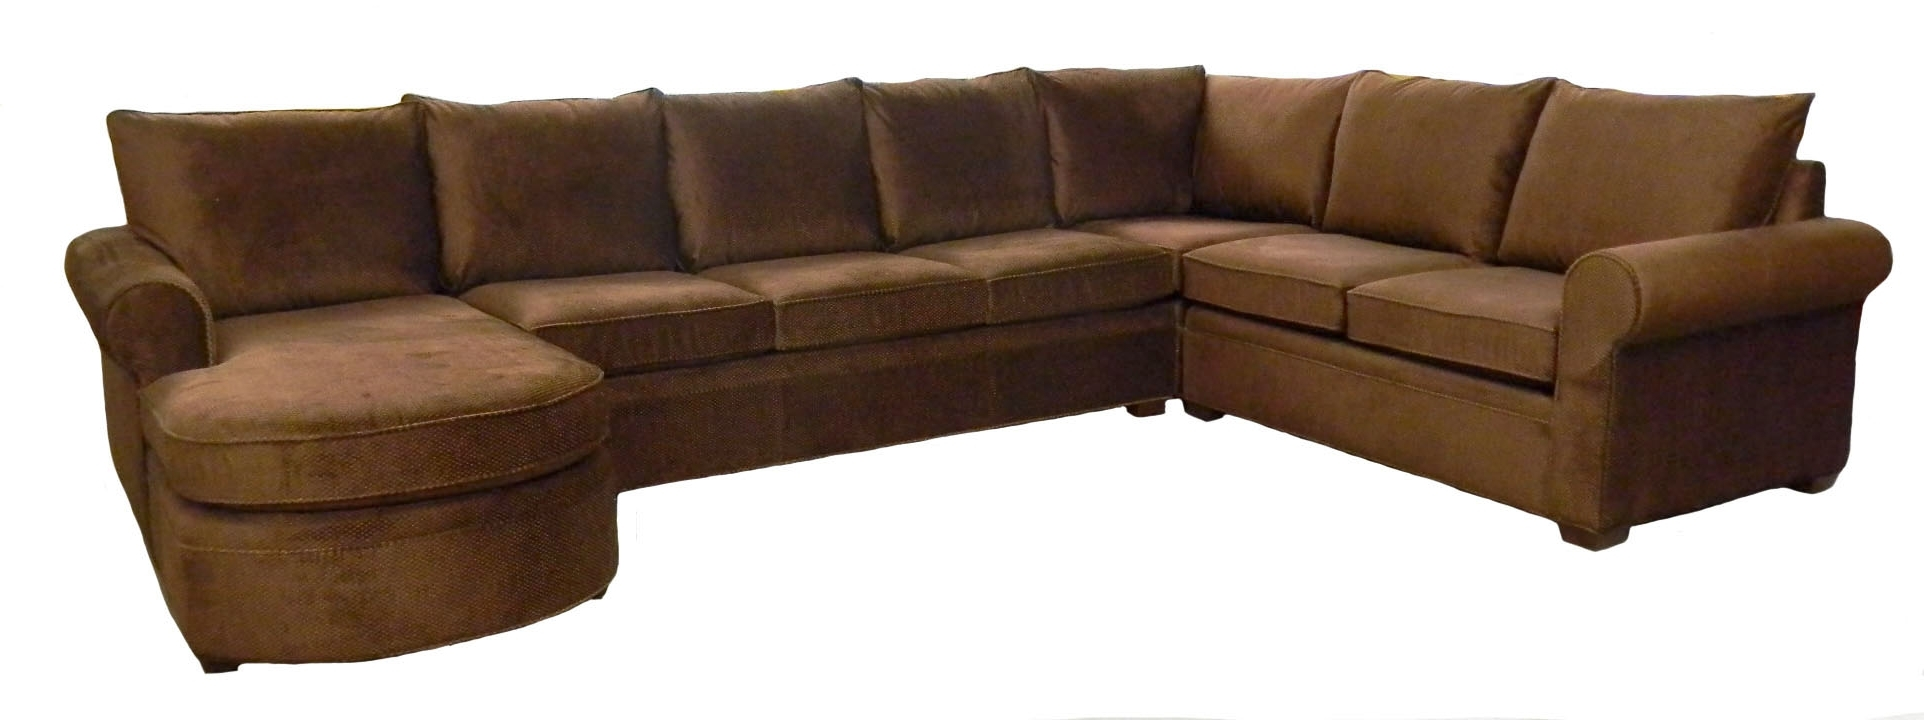 Denver Sectional Sofas For 2018 Sectional Sofa Denver – Hotelsbacau (View 7 of 20)